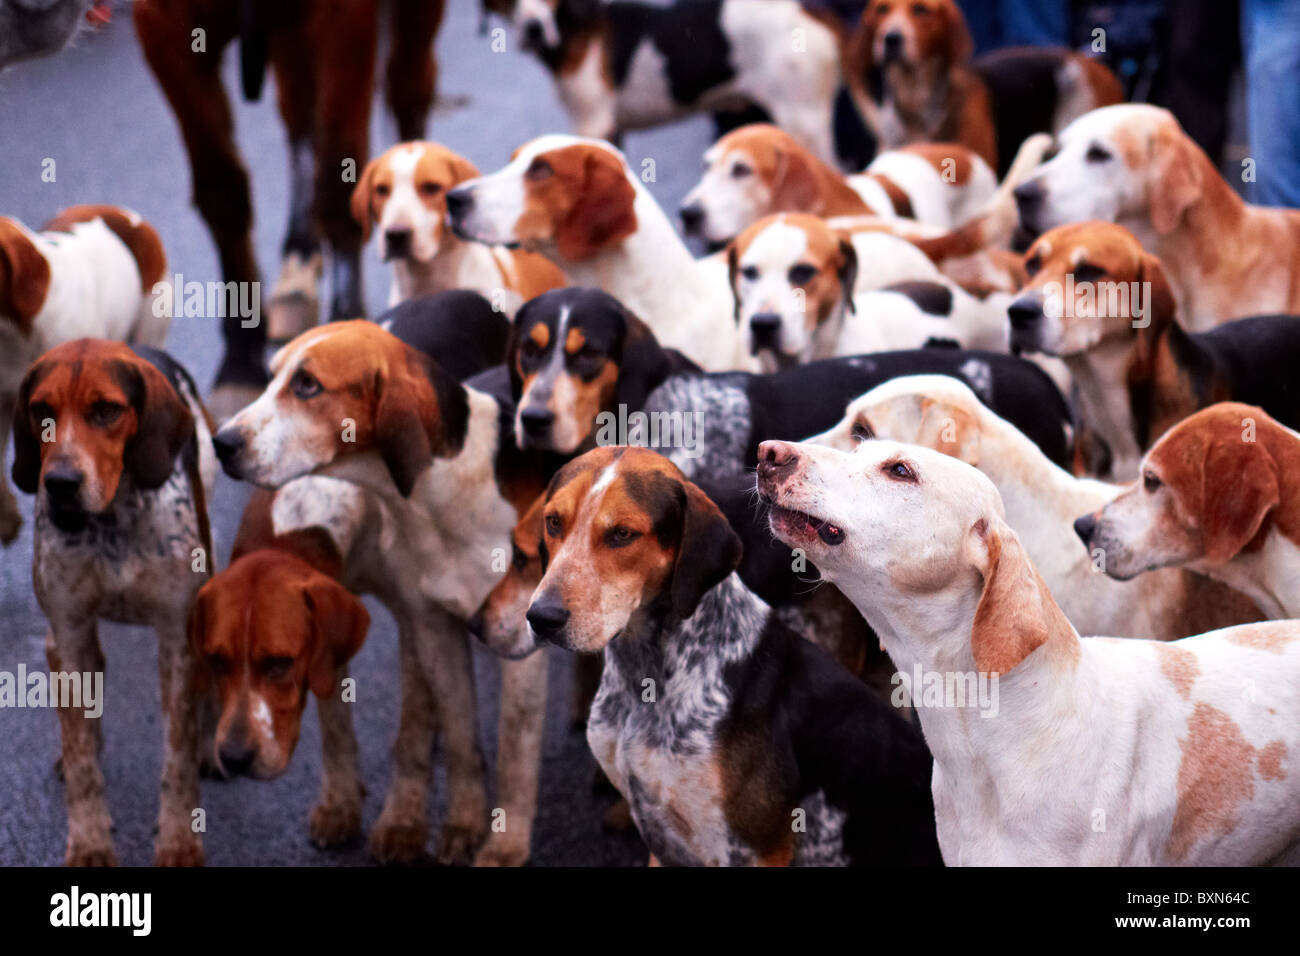 CORNWALL, UK. A huntsman addresses the hunt and supporters before the start of the Cury Foxhounds hunt. - Stock Image